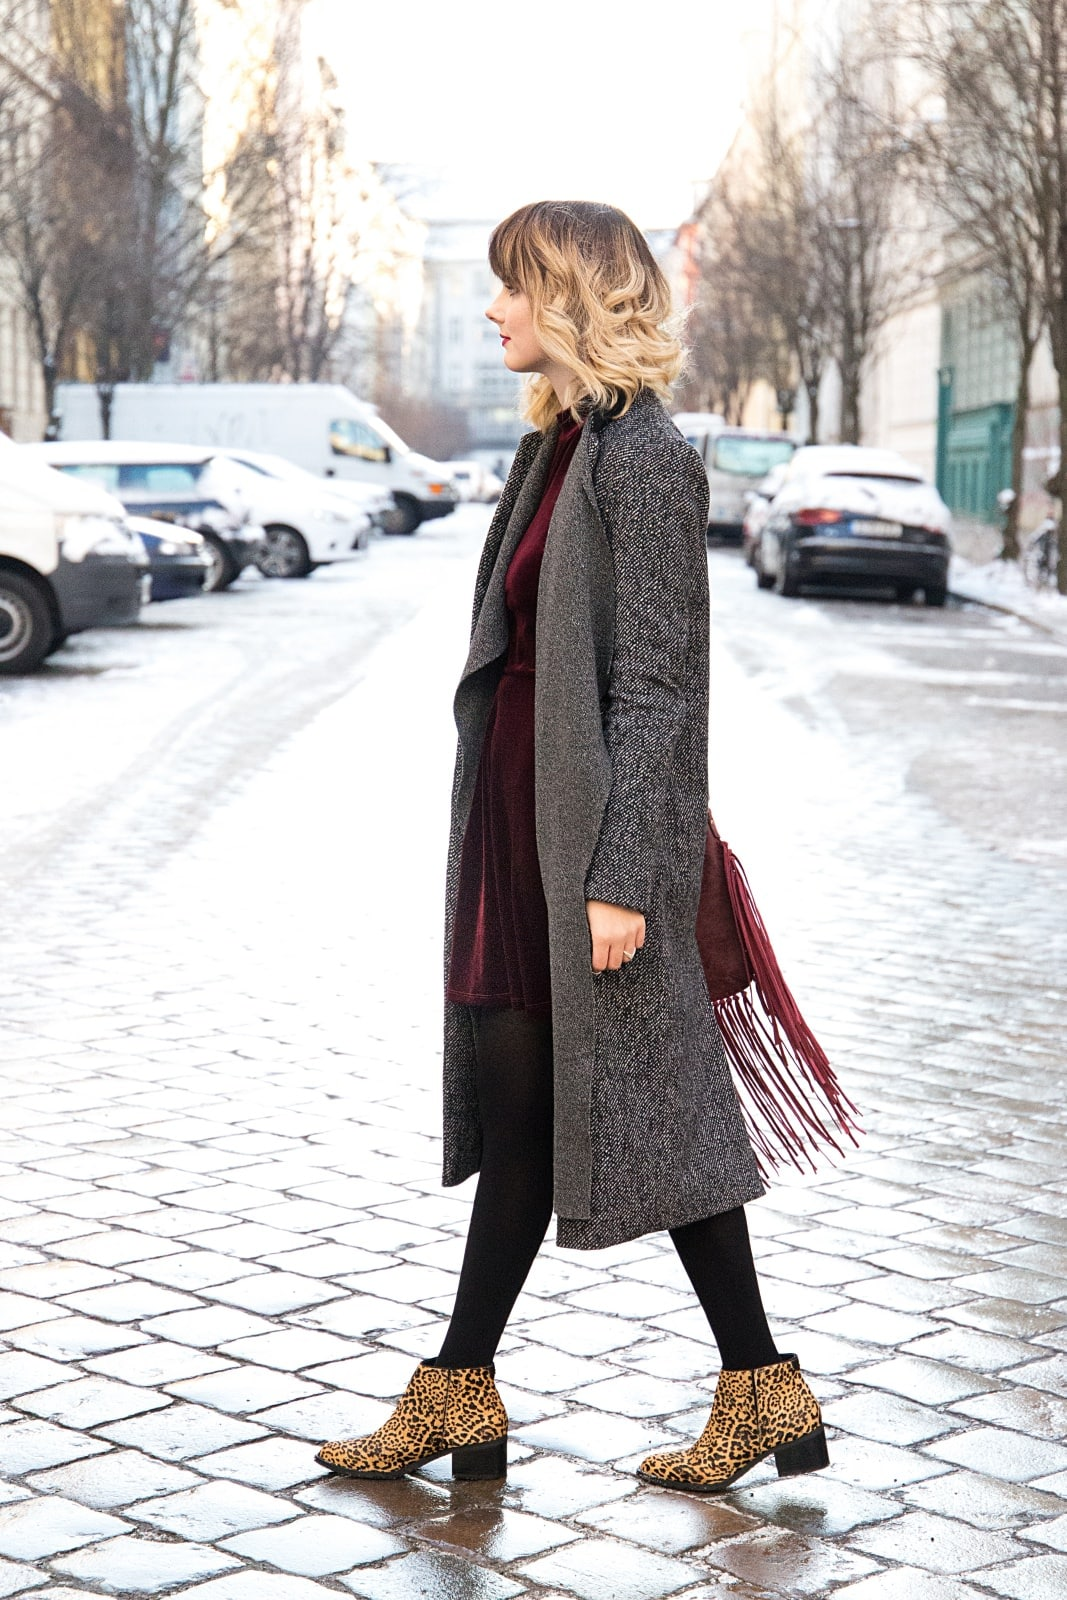 desbelleschoses-fashion-blog-köln-deutschland-berlin-fashion-week-januar-2016-streetstyle-tag-2-samtkleid-leo-boots 9